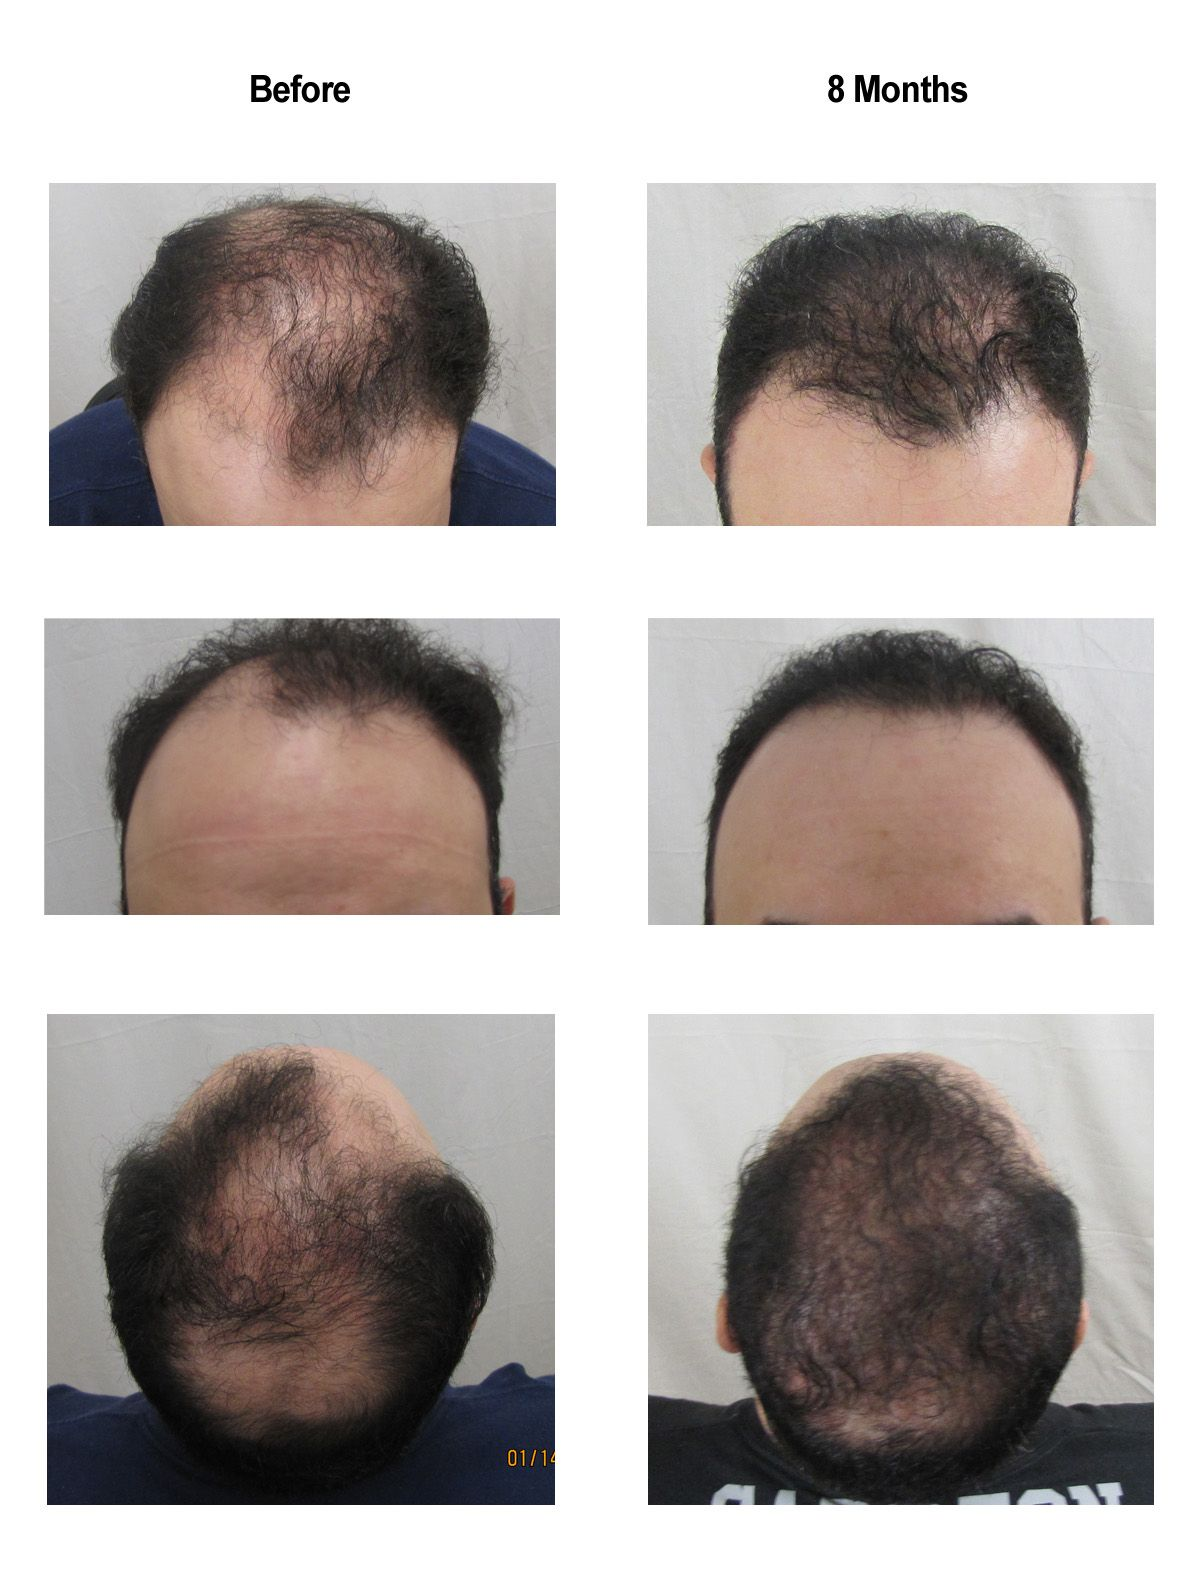 Before And After Of Recent Hair Transplantat 8 Months